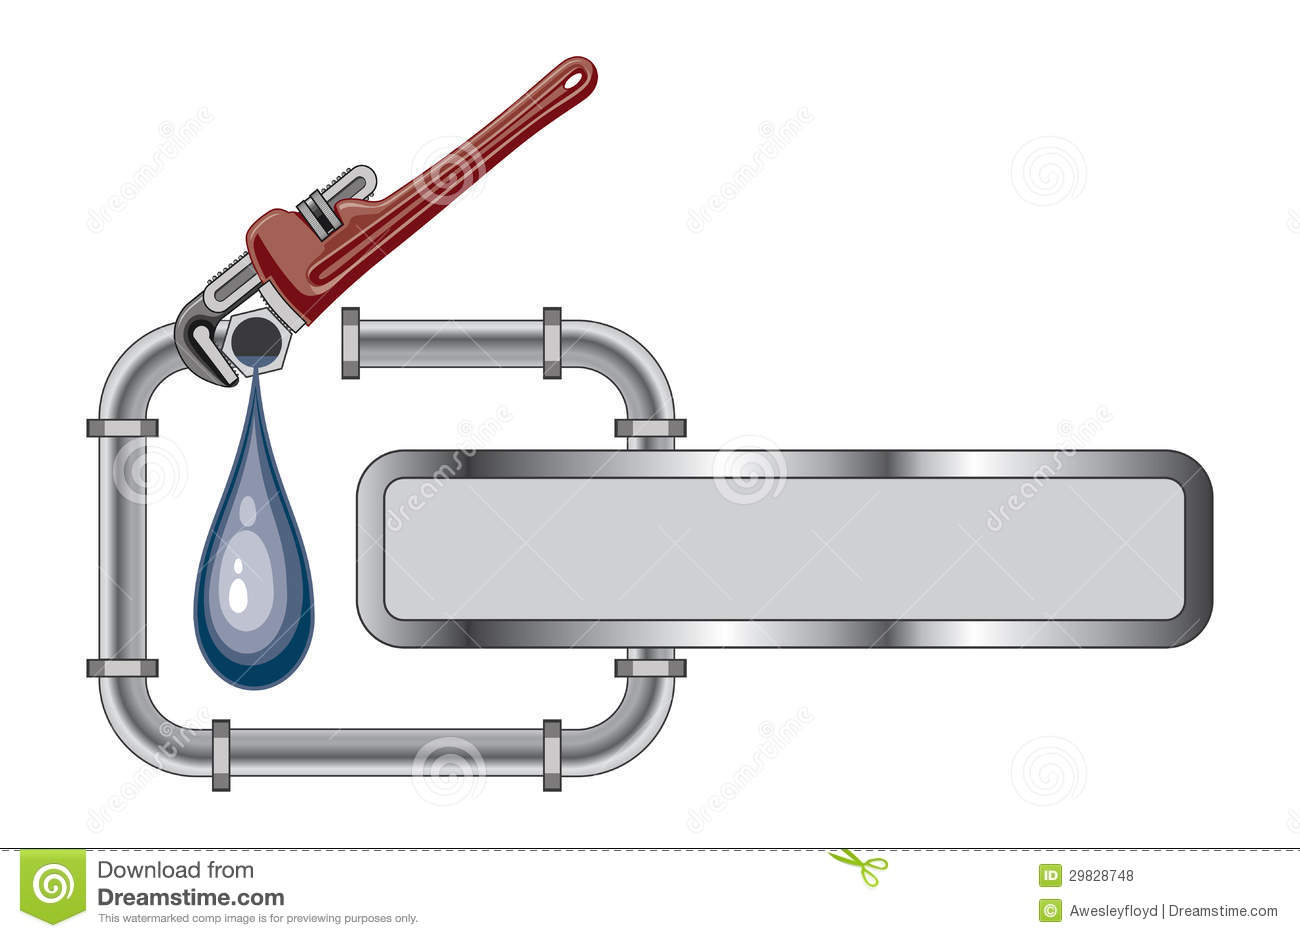 illustration-of-a-plumbing-design-with-pipes-adjustable-wrench-and-KWbPHl-clipart.jpg